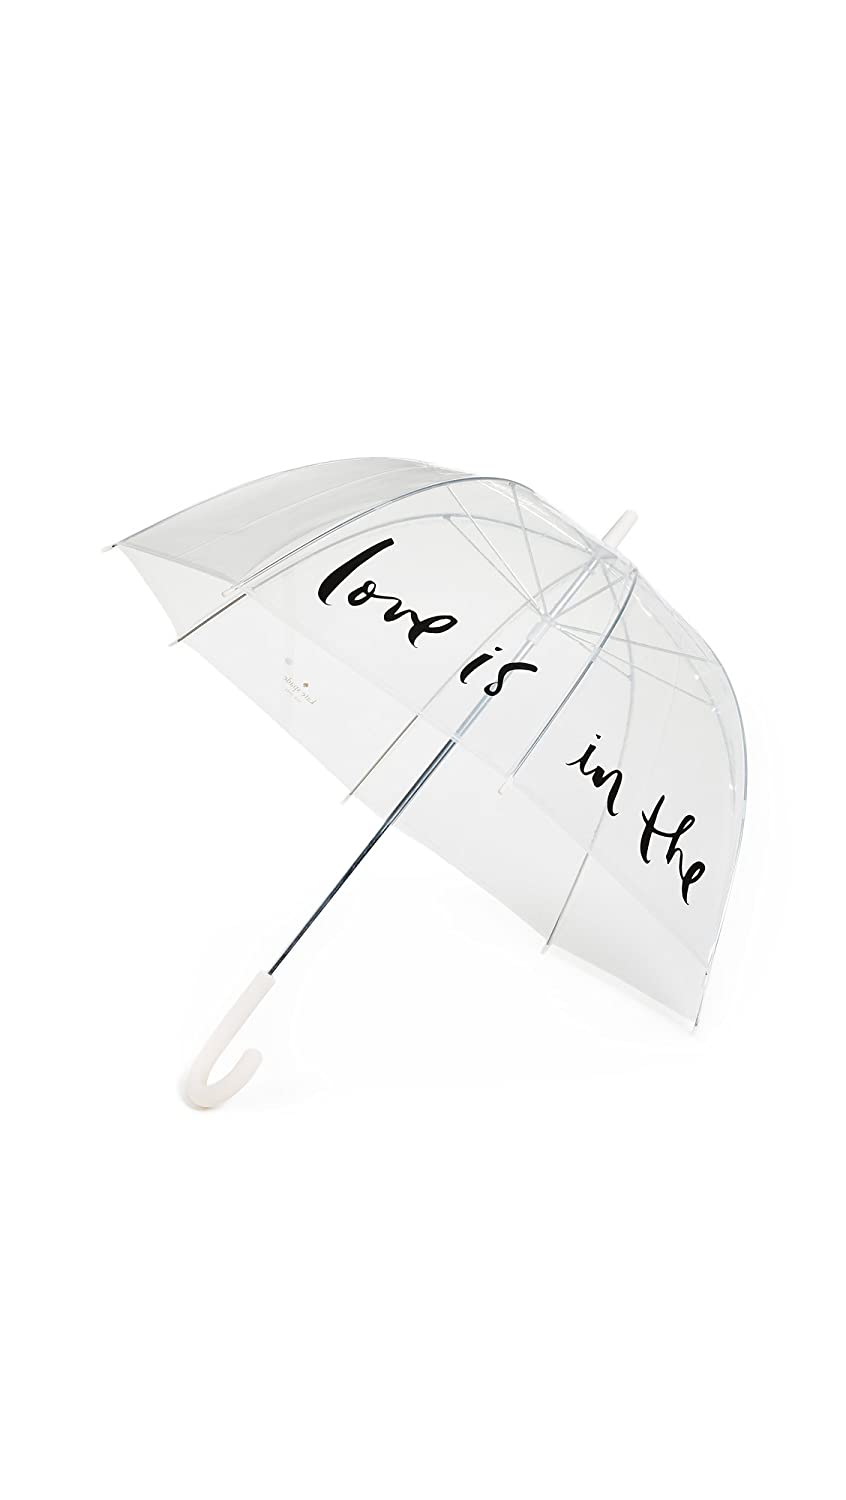 Kate Spade New York Women's Love Is in the Air Clear Umbrella Pink/Clear One Size Lifeguard Press